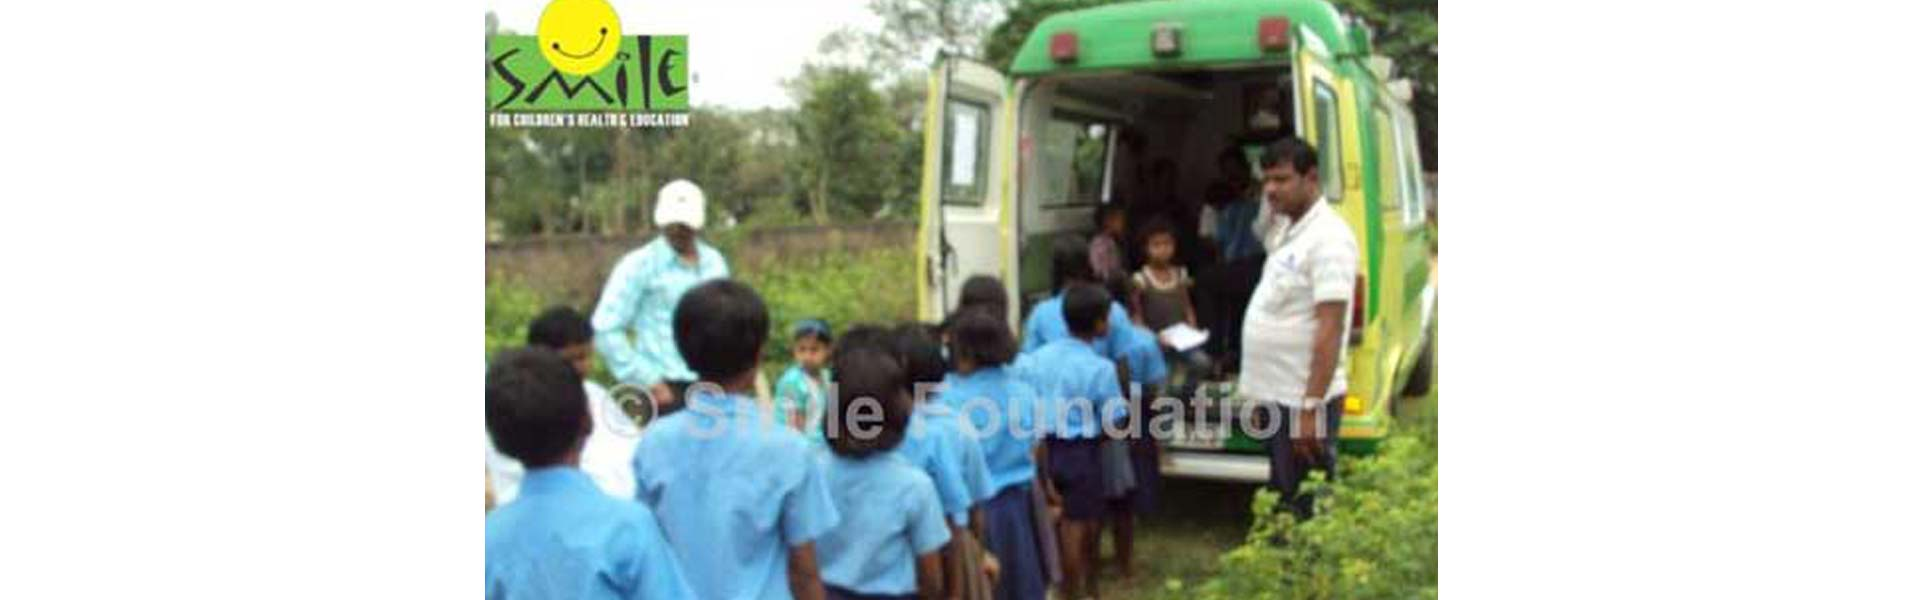 The Smile on Wheels mobile hospital project in Jharkhand completes four years of operation